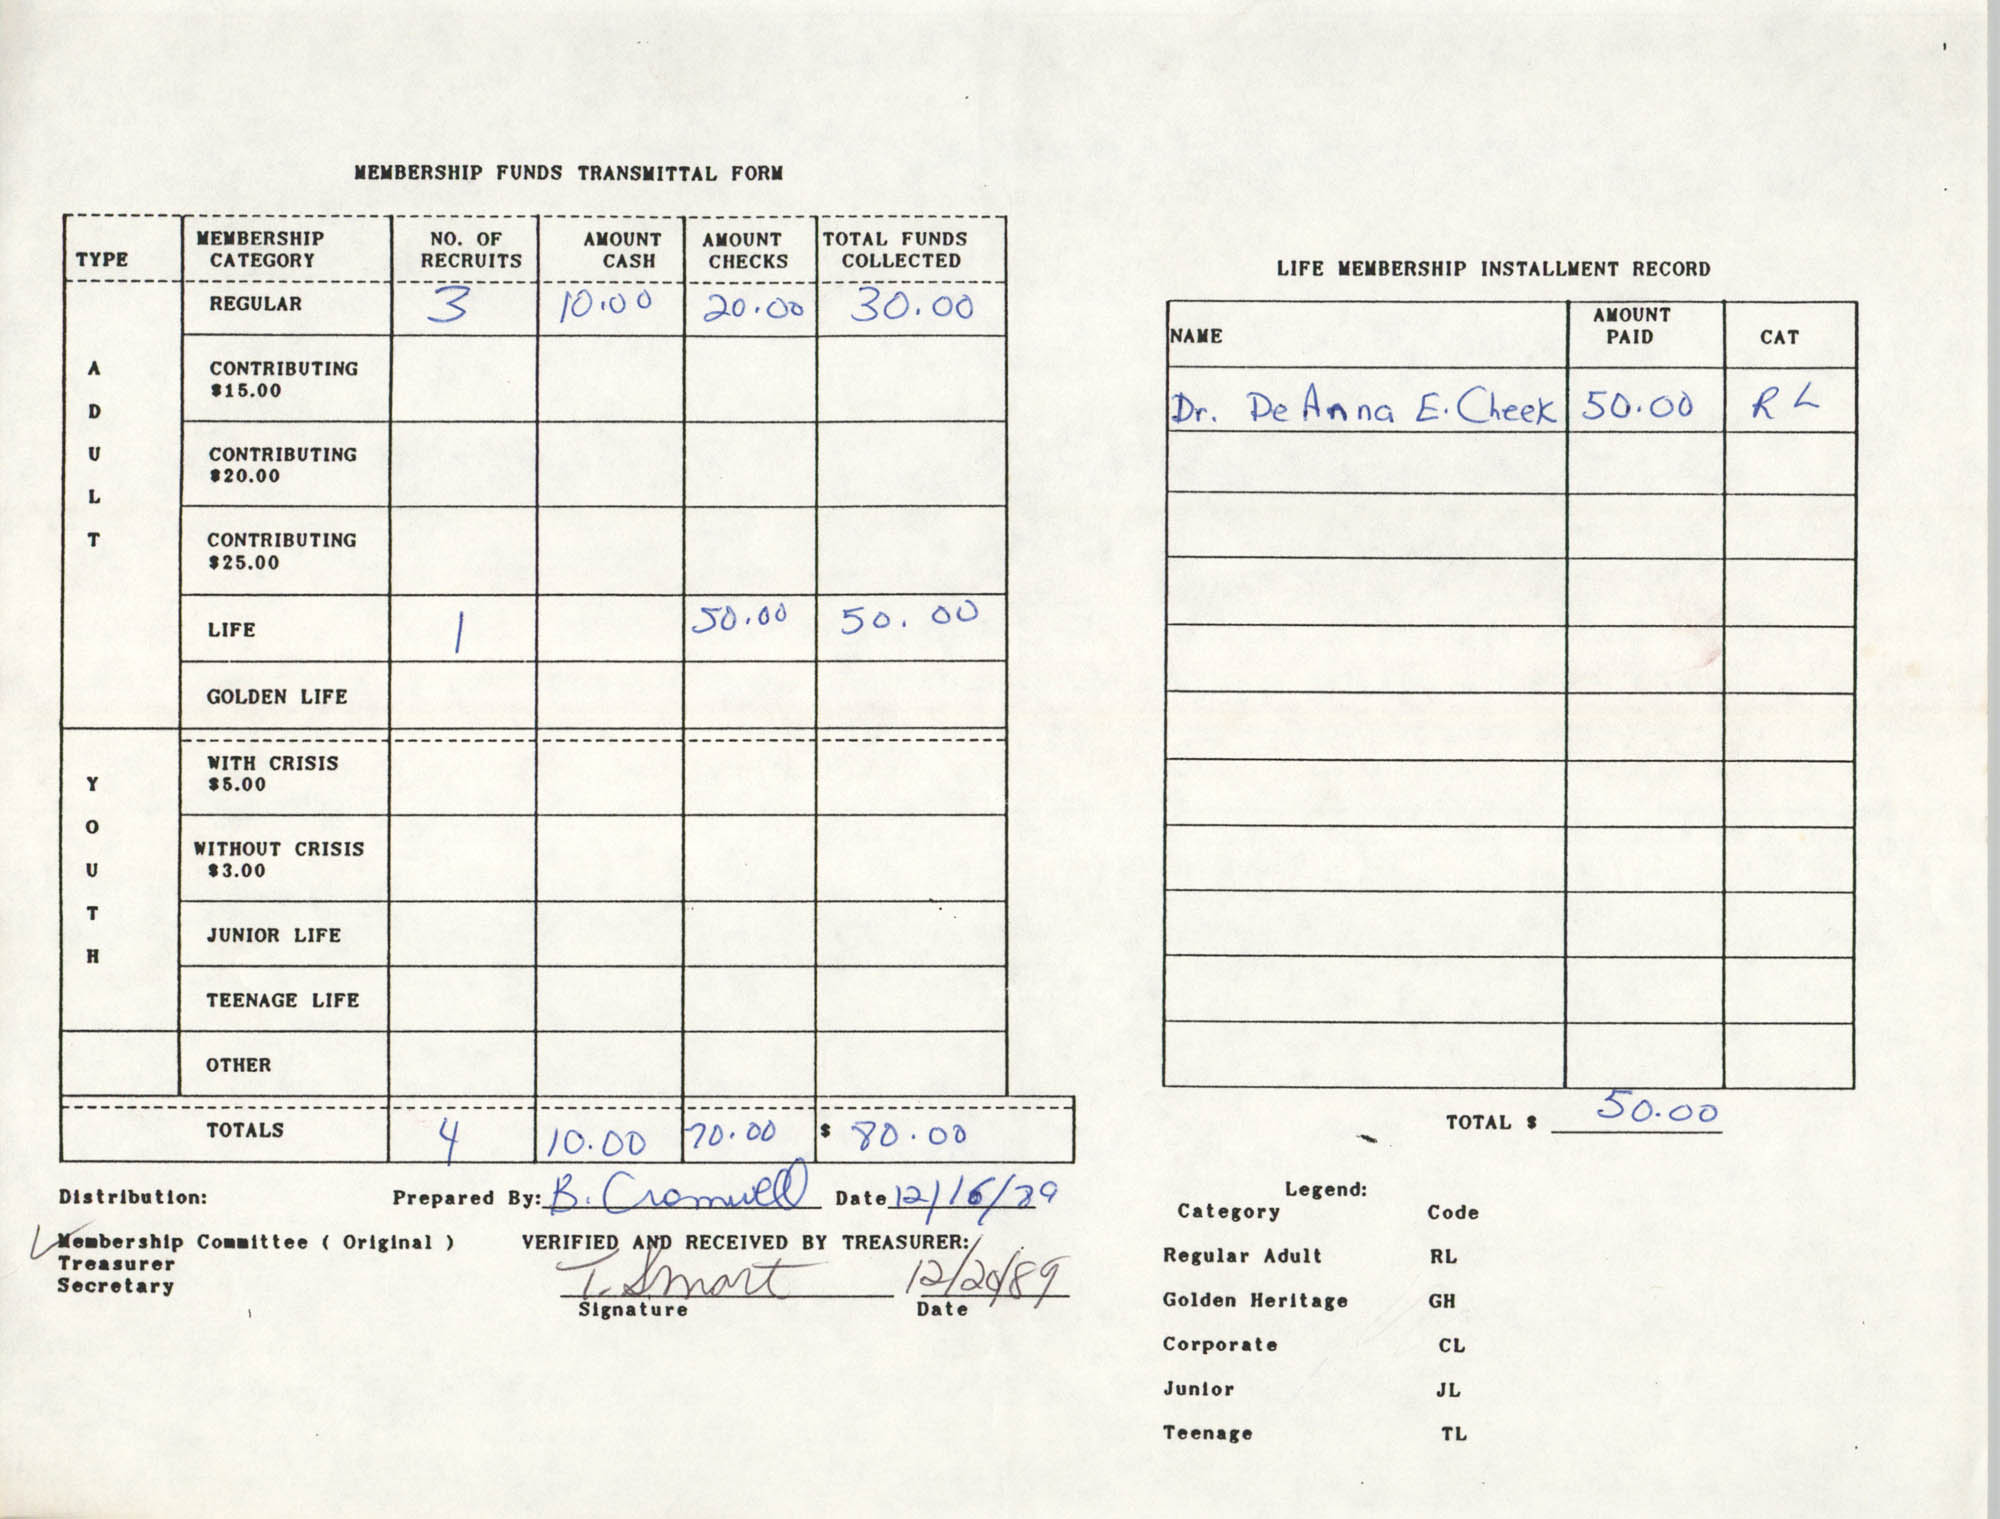 Charleston Branch of the NAACP Funds Transmittal Forms, December 1989, Page 4